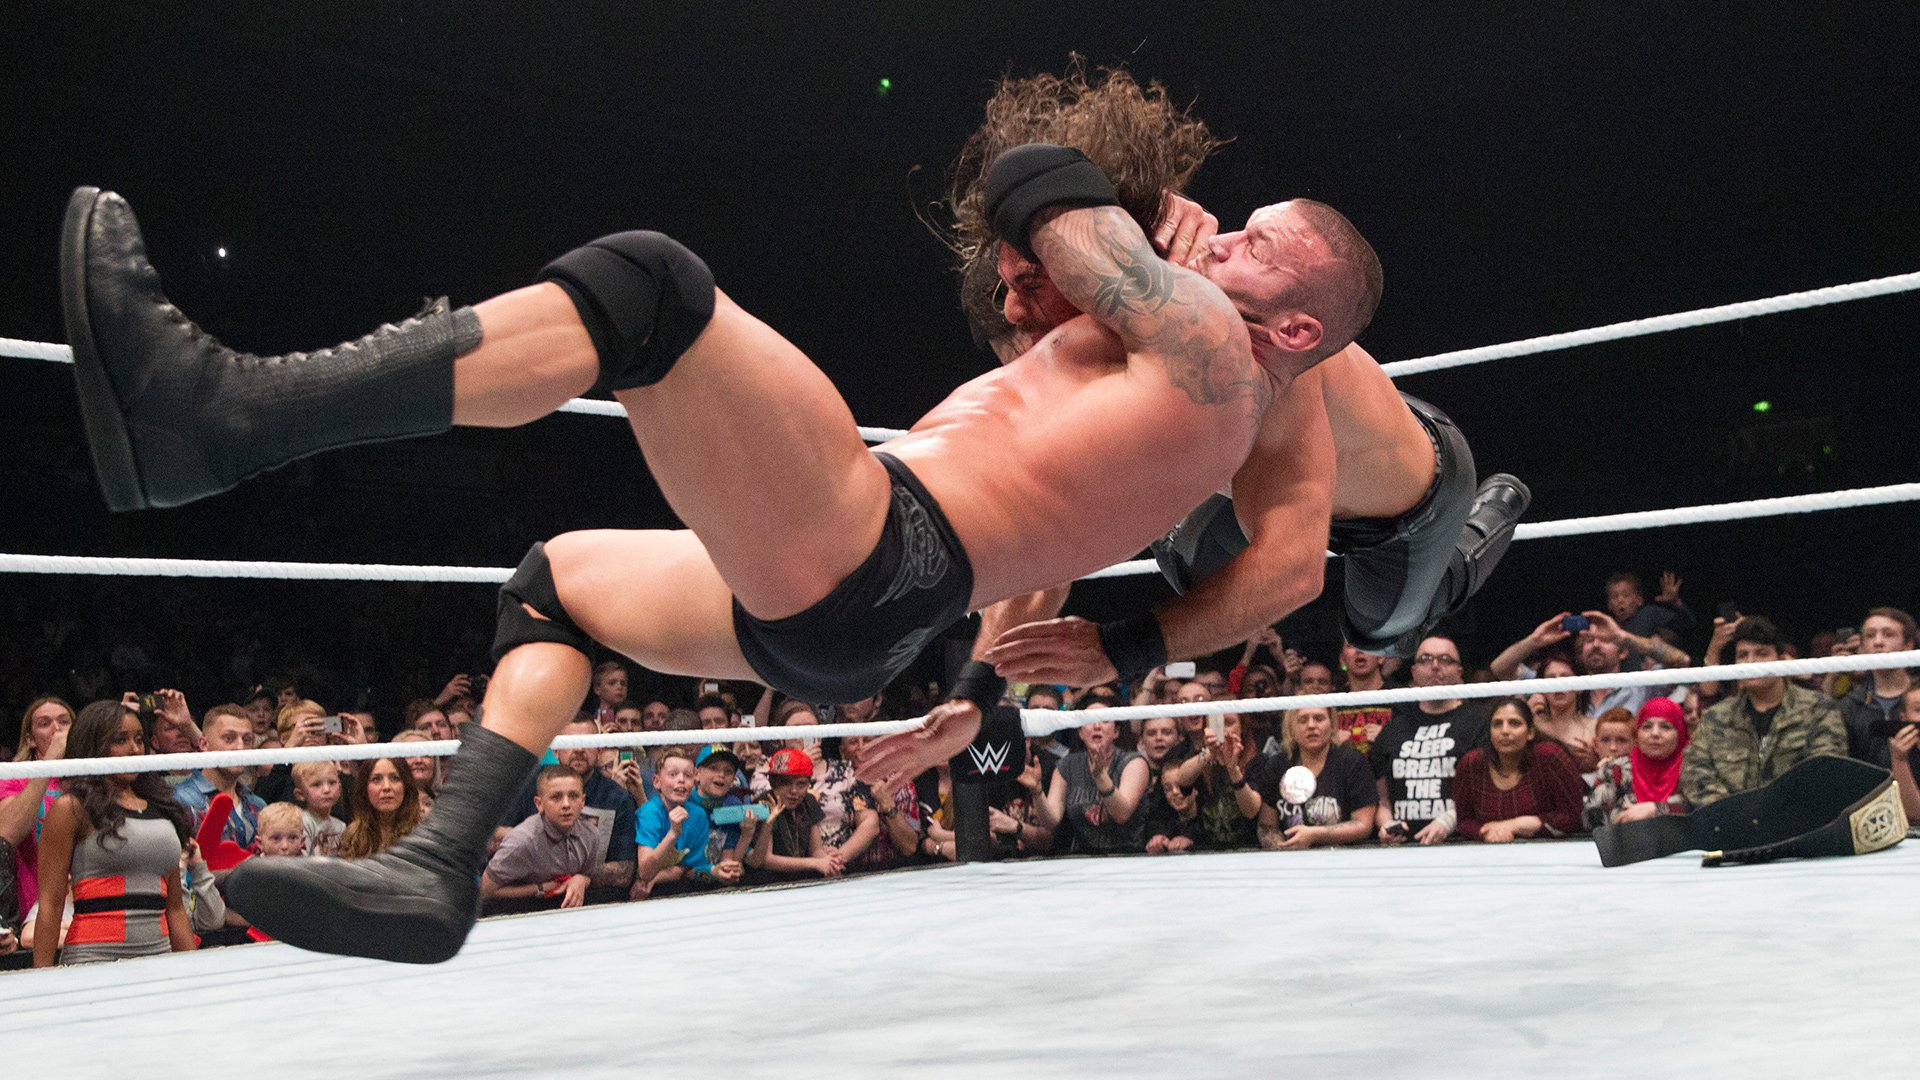 Man doing RKO wrestling move